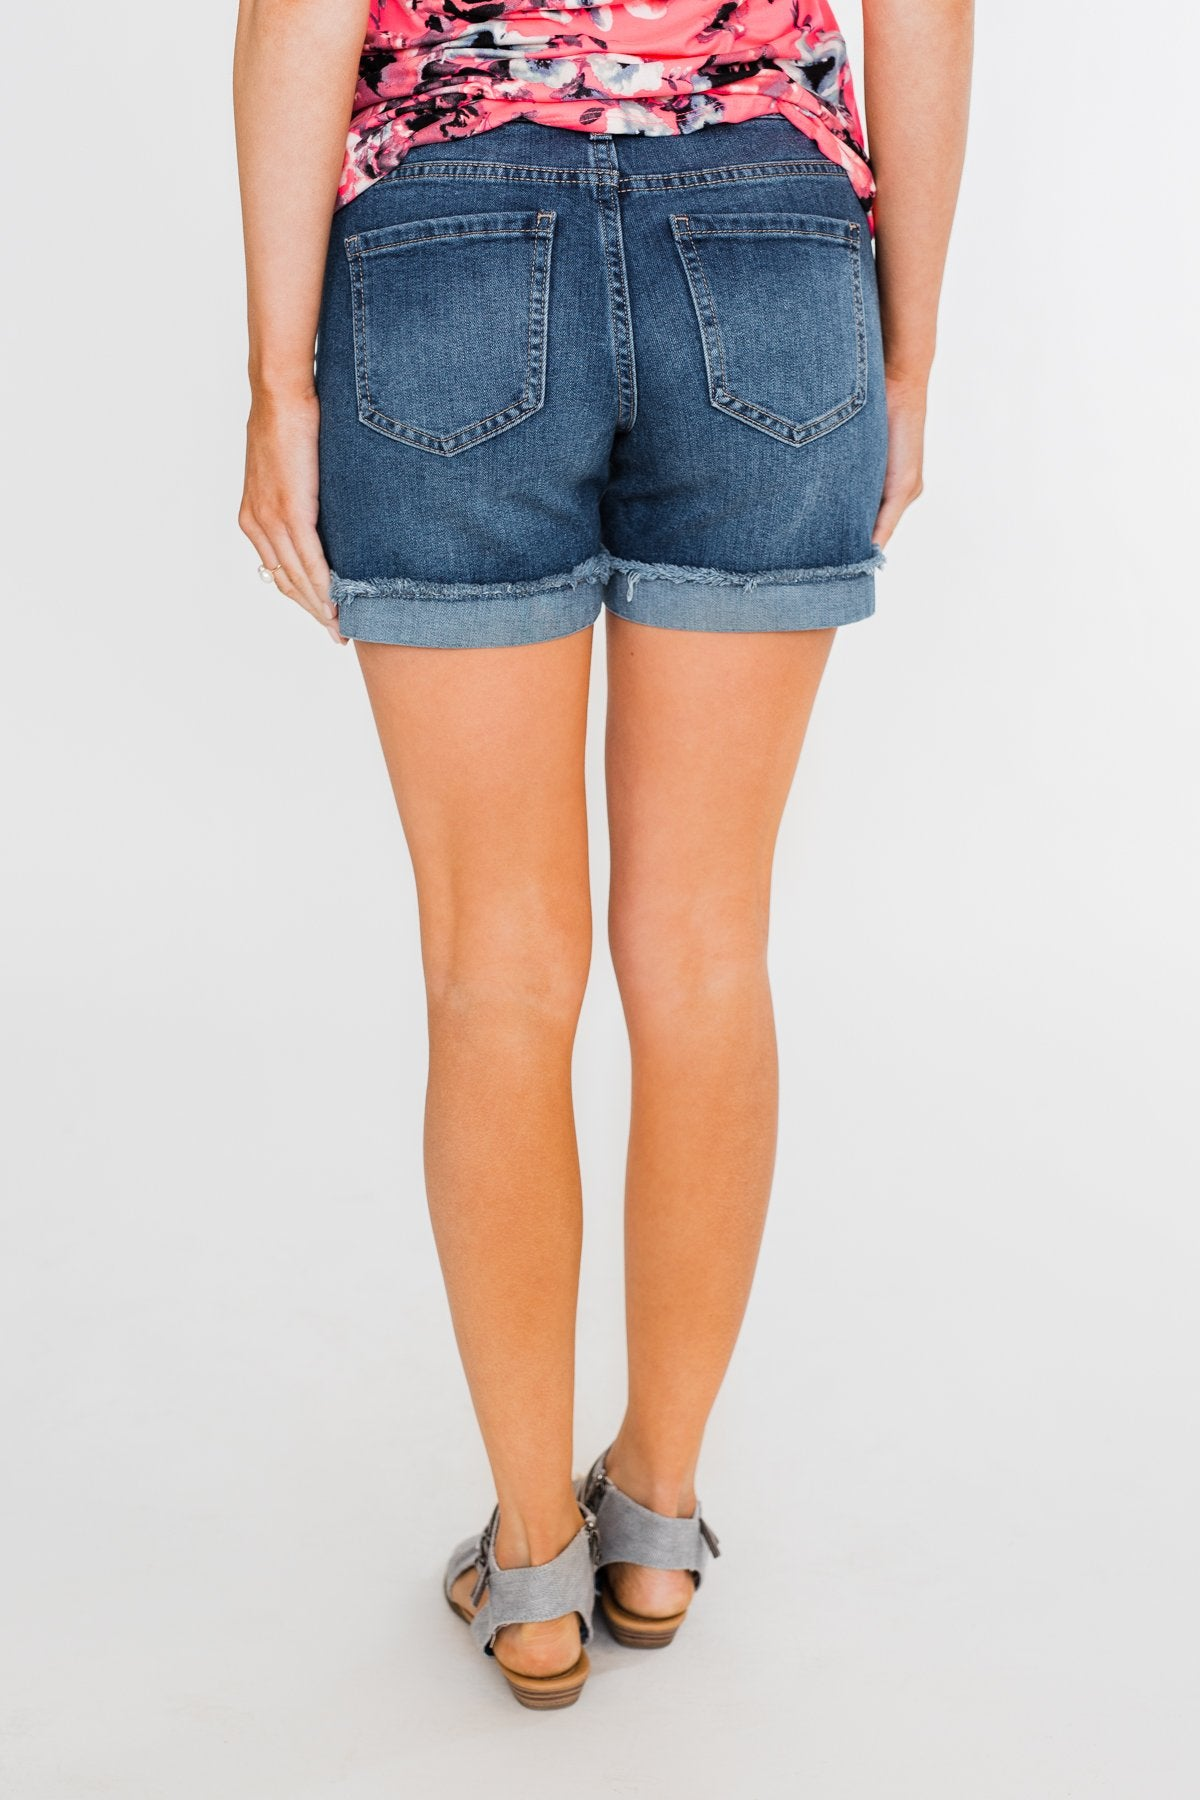 Celebrity Pink Cuff Shorts- Medium-Dark Wash